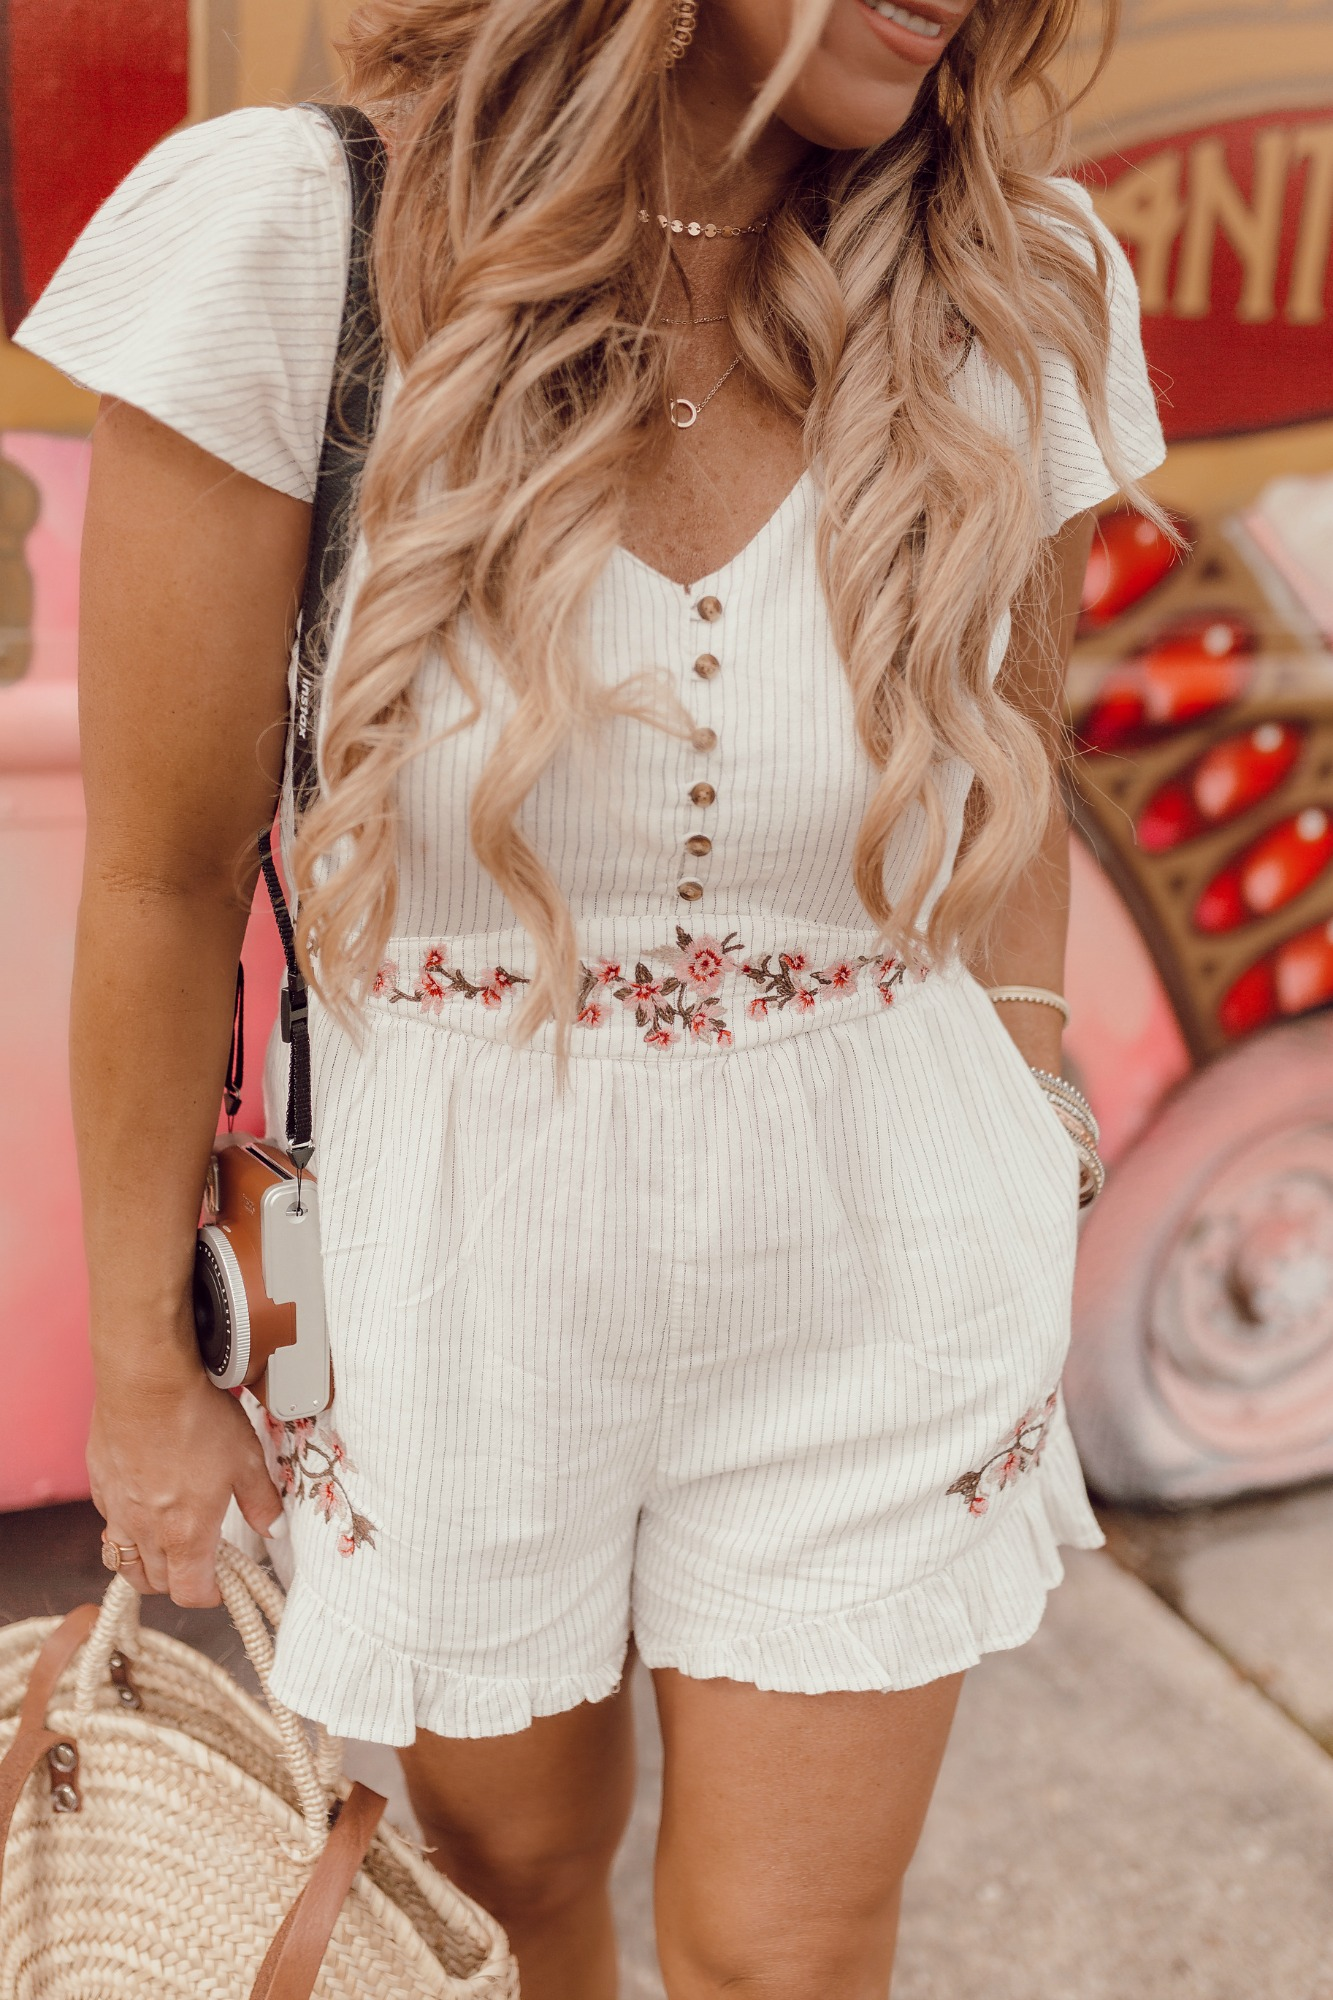 Short sleeve romper with buttons on JanuaryHart.com